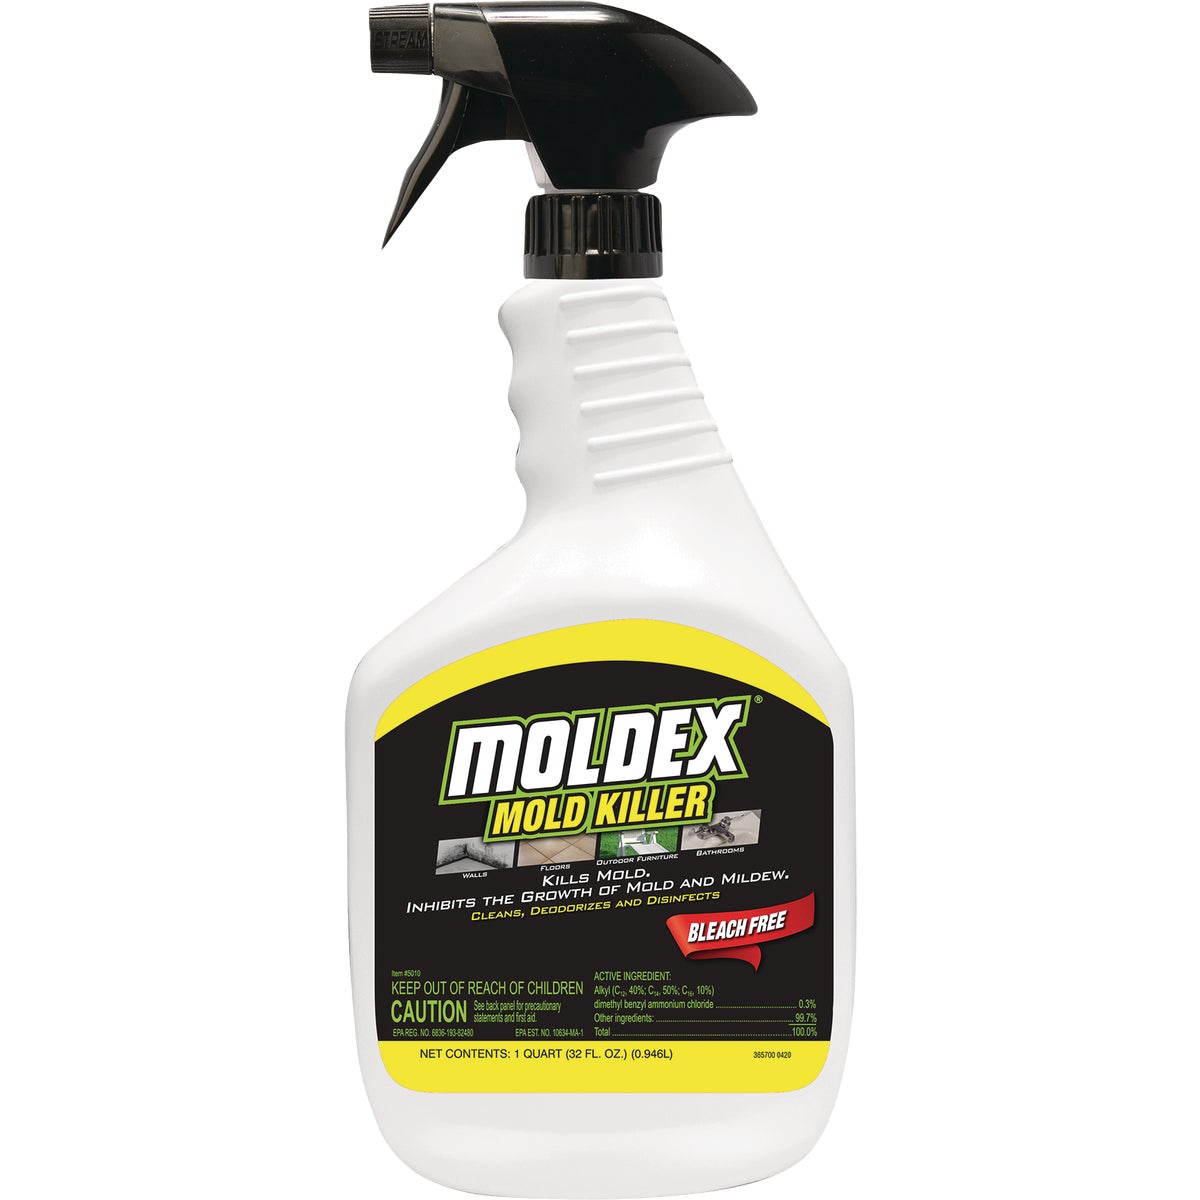 MOLDX SPRAY DISINFECTANT - 5010 by Envirocare Corp